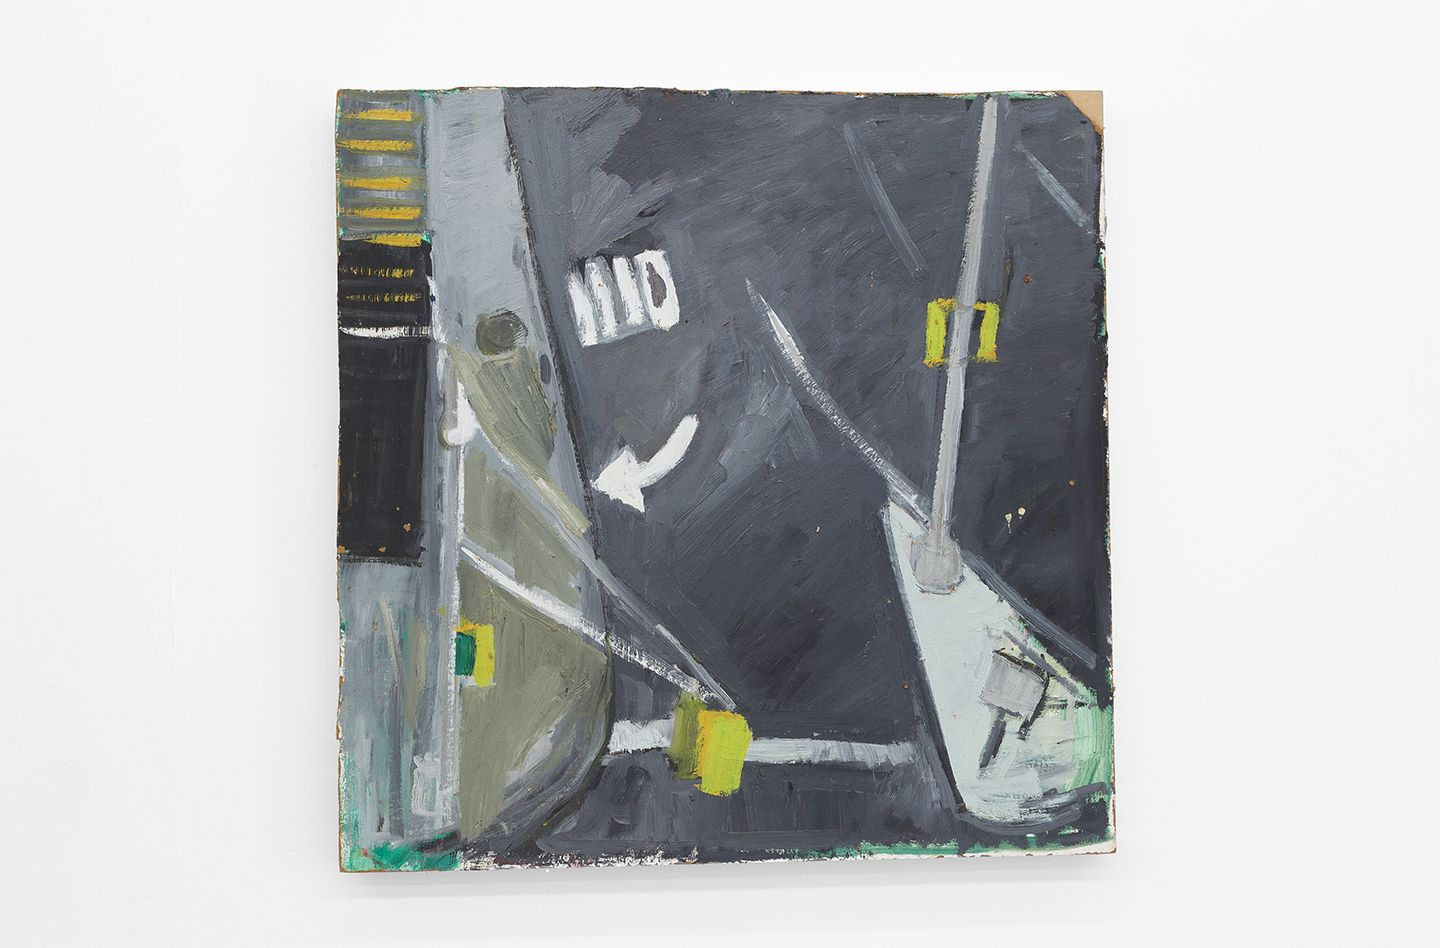 Mary Ann Aitken Untitled (Gratiot and Broadway), circa 1985-89, Oil on masonite, 24 x 24 inches (61 x 61 cm)